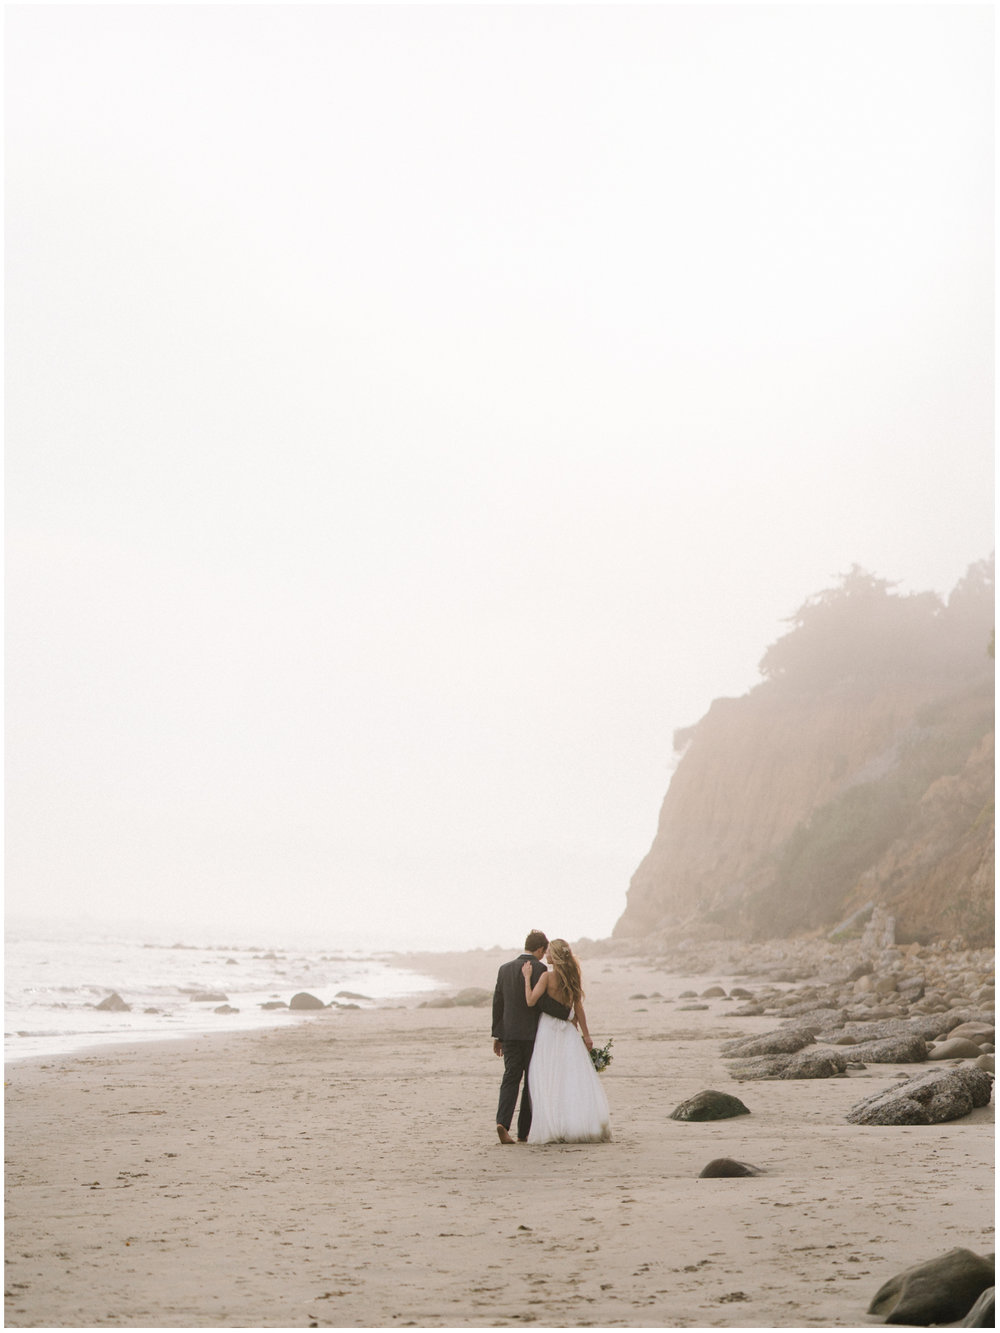 Santa Babara Elopement Wedding Photographer - Pinnel Photography-01-24.jpg